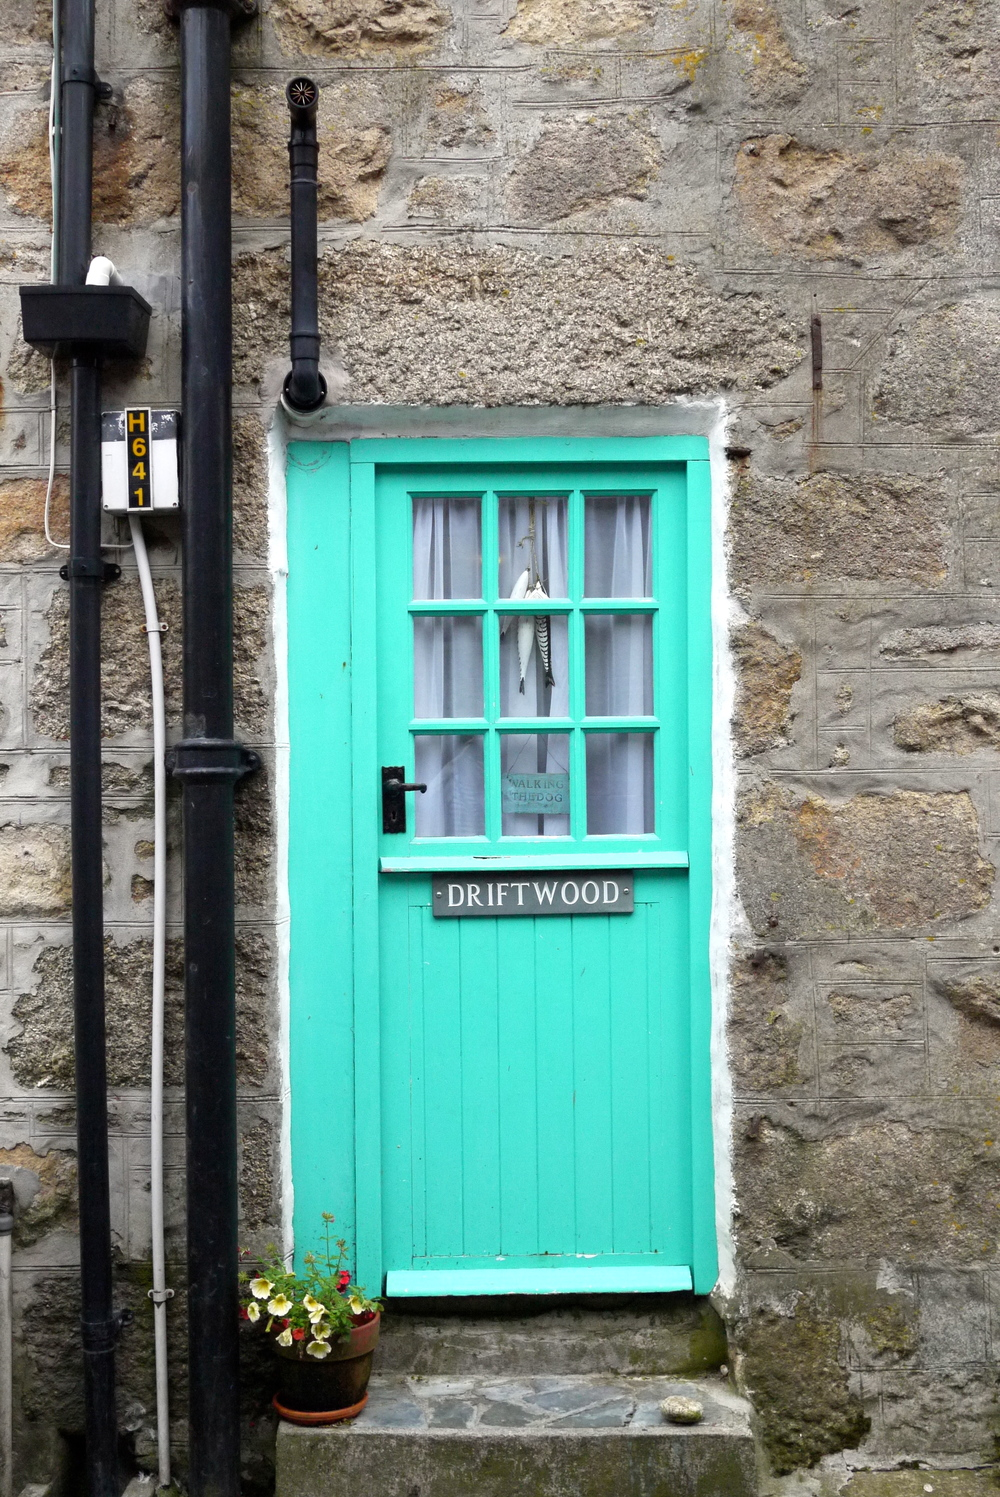 st ives, cornwall | sally mussellwhite